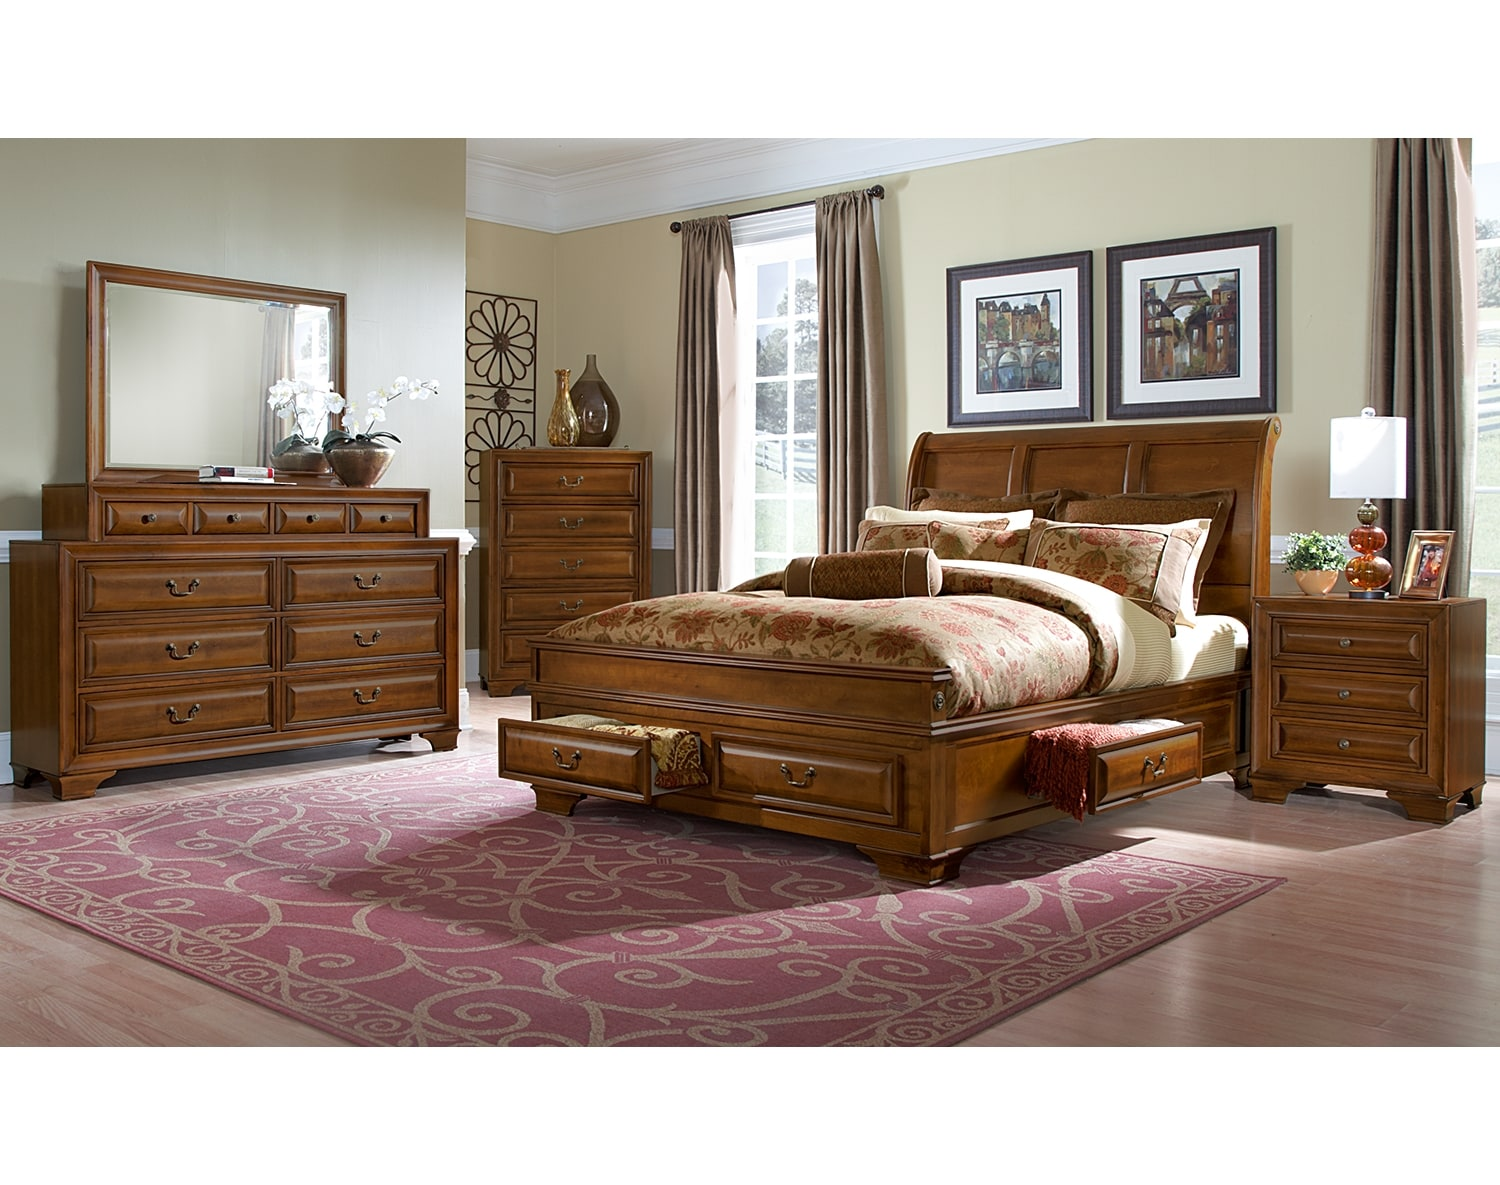 sanibelle bedroom collection value city furniture. Black Bedroom Furniture Sets. Home Design Ideas